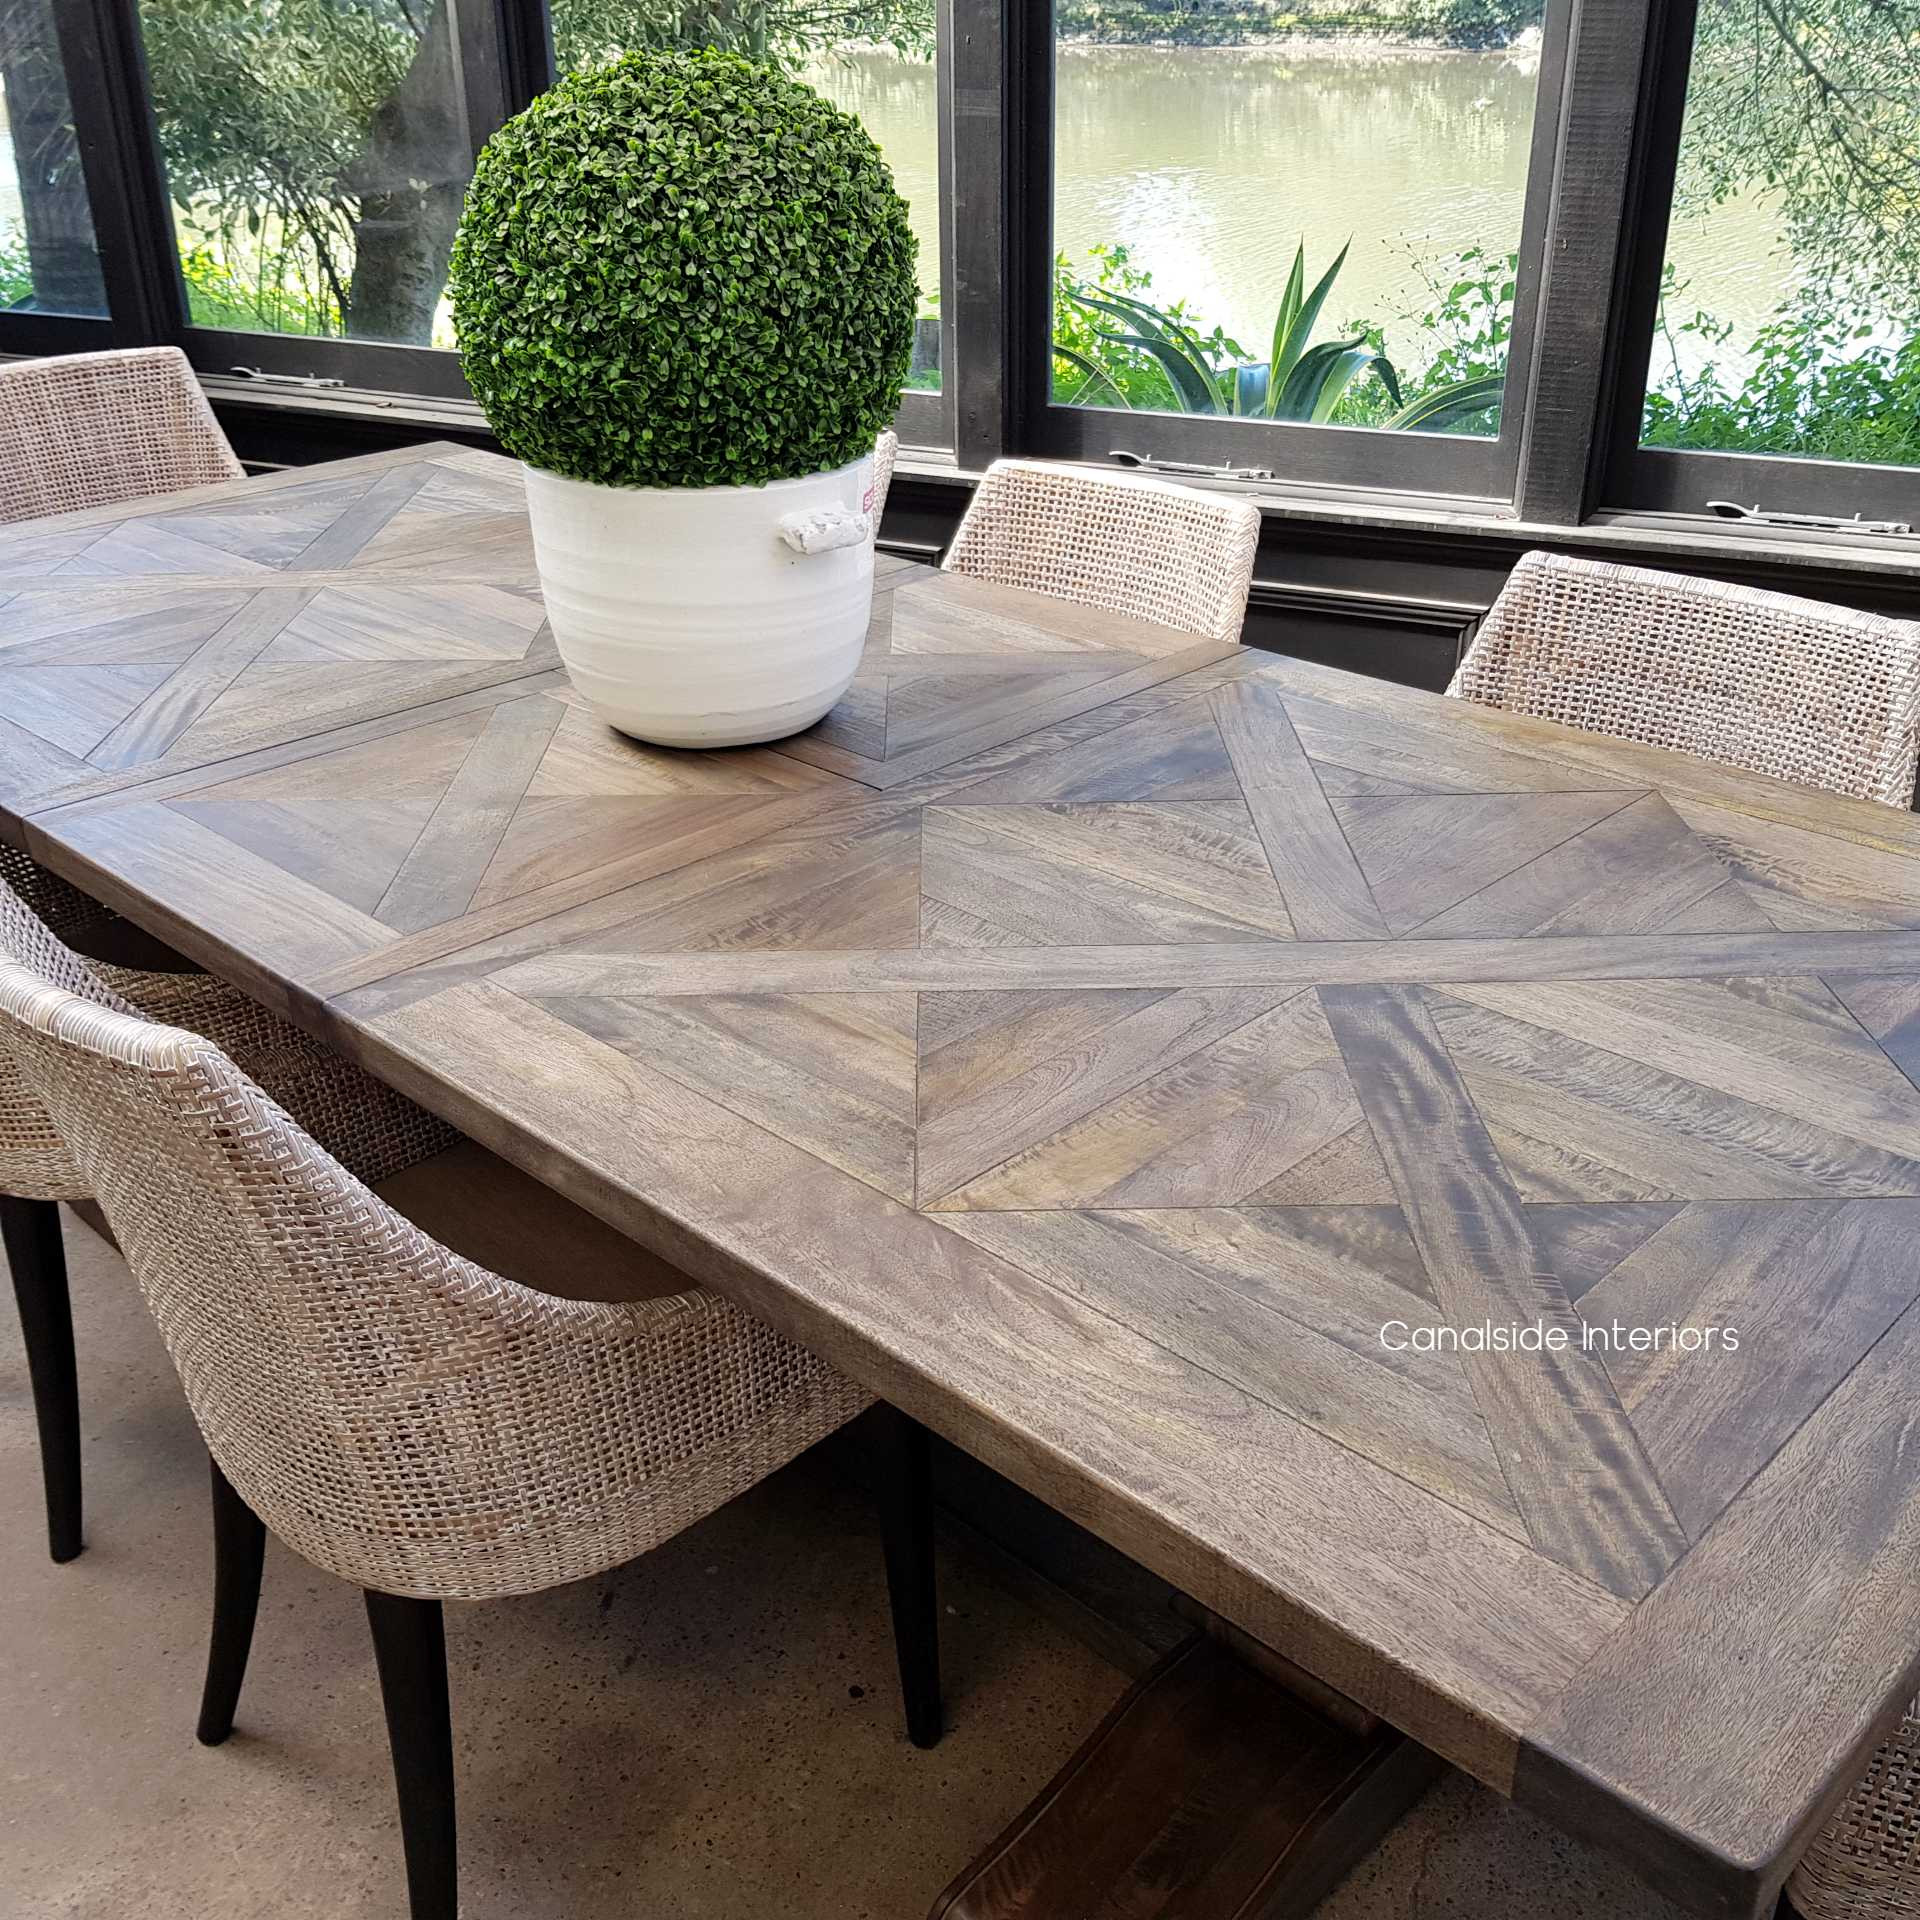 Bridgehampton Parquetry Double Extension Dining Table tables, hamptons, hamptons, hampton table, provincial, plantation, dining tables, trestle base, dining room